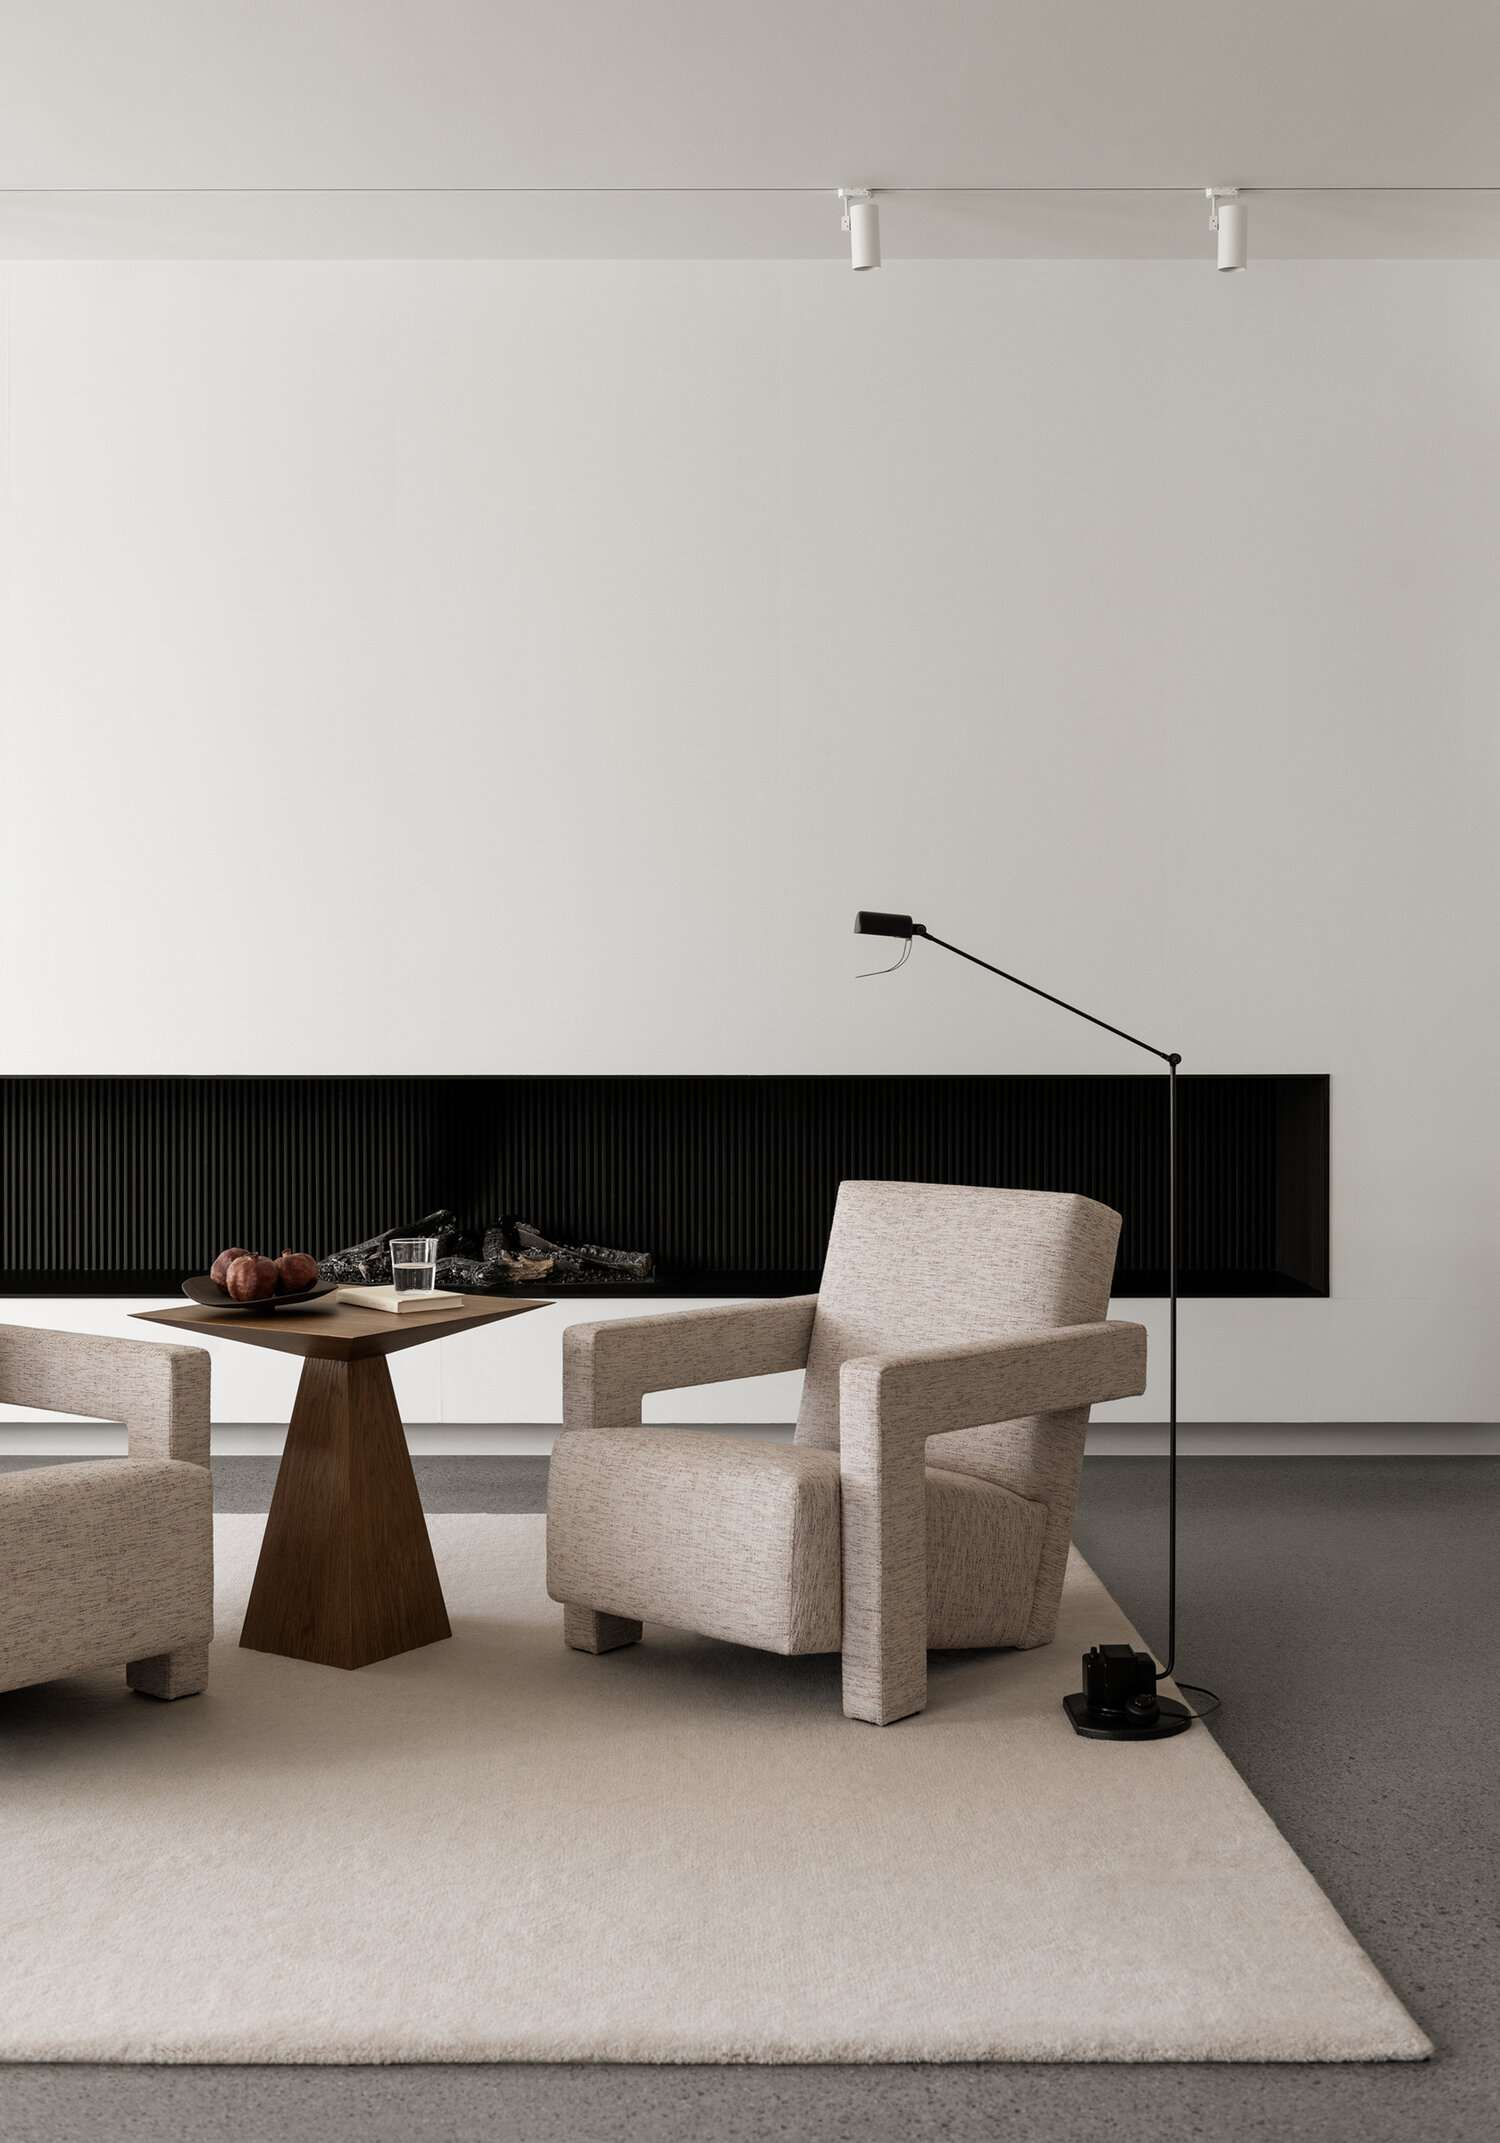 A living room filled with sleek furniture that boasts sleek lines and crisp silhouettes